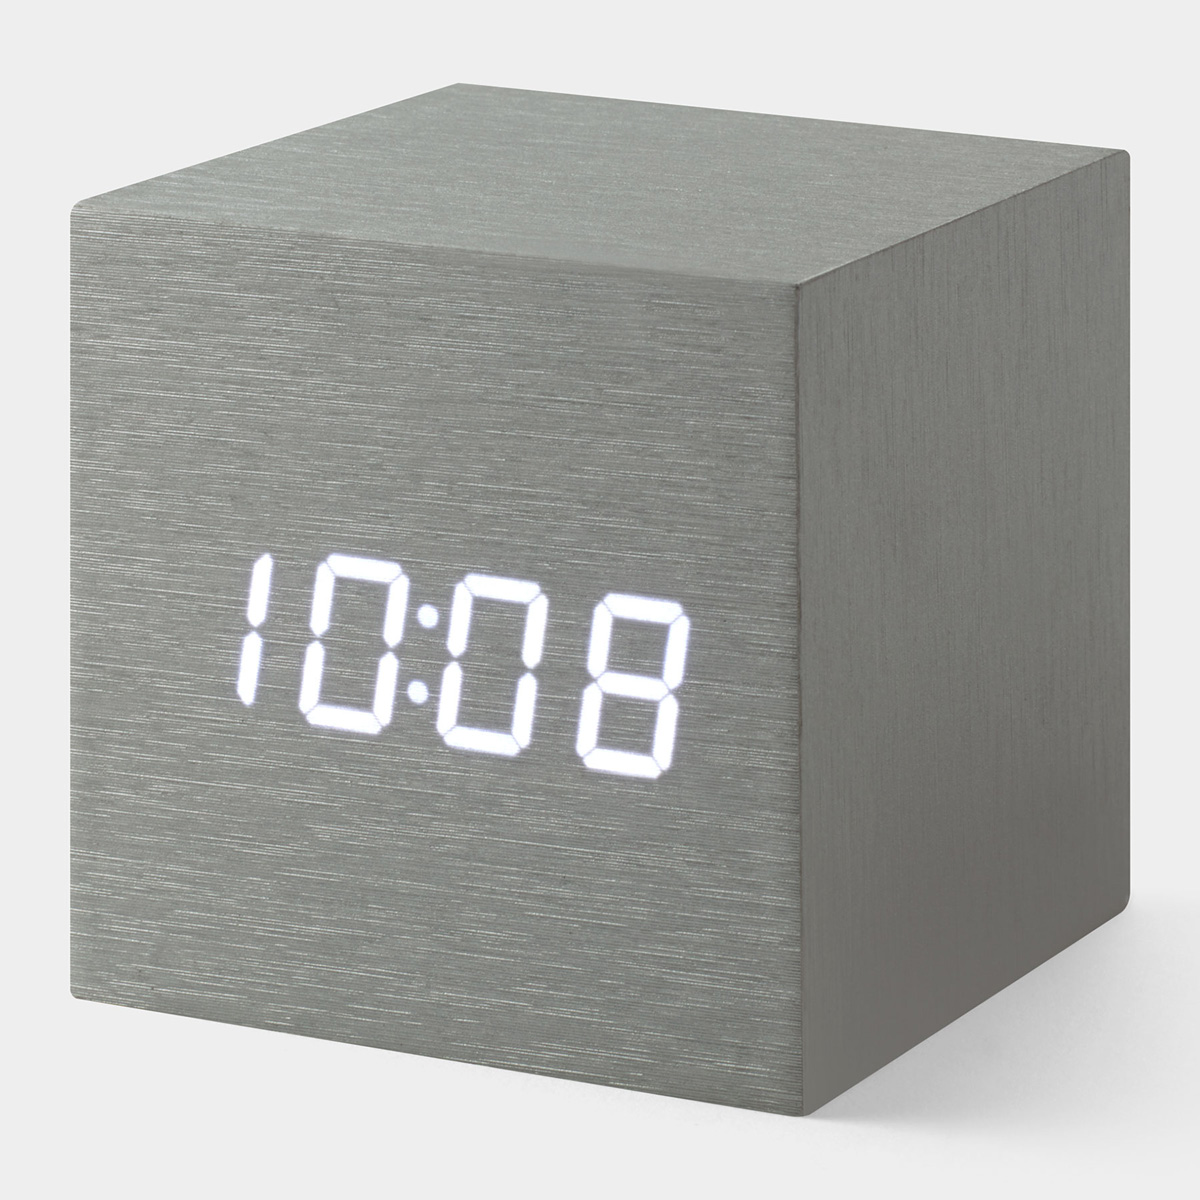 Alume Cube Alarm Clock The Green Head